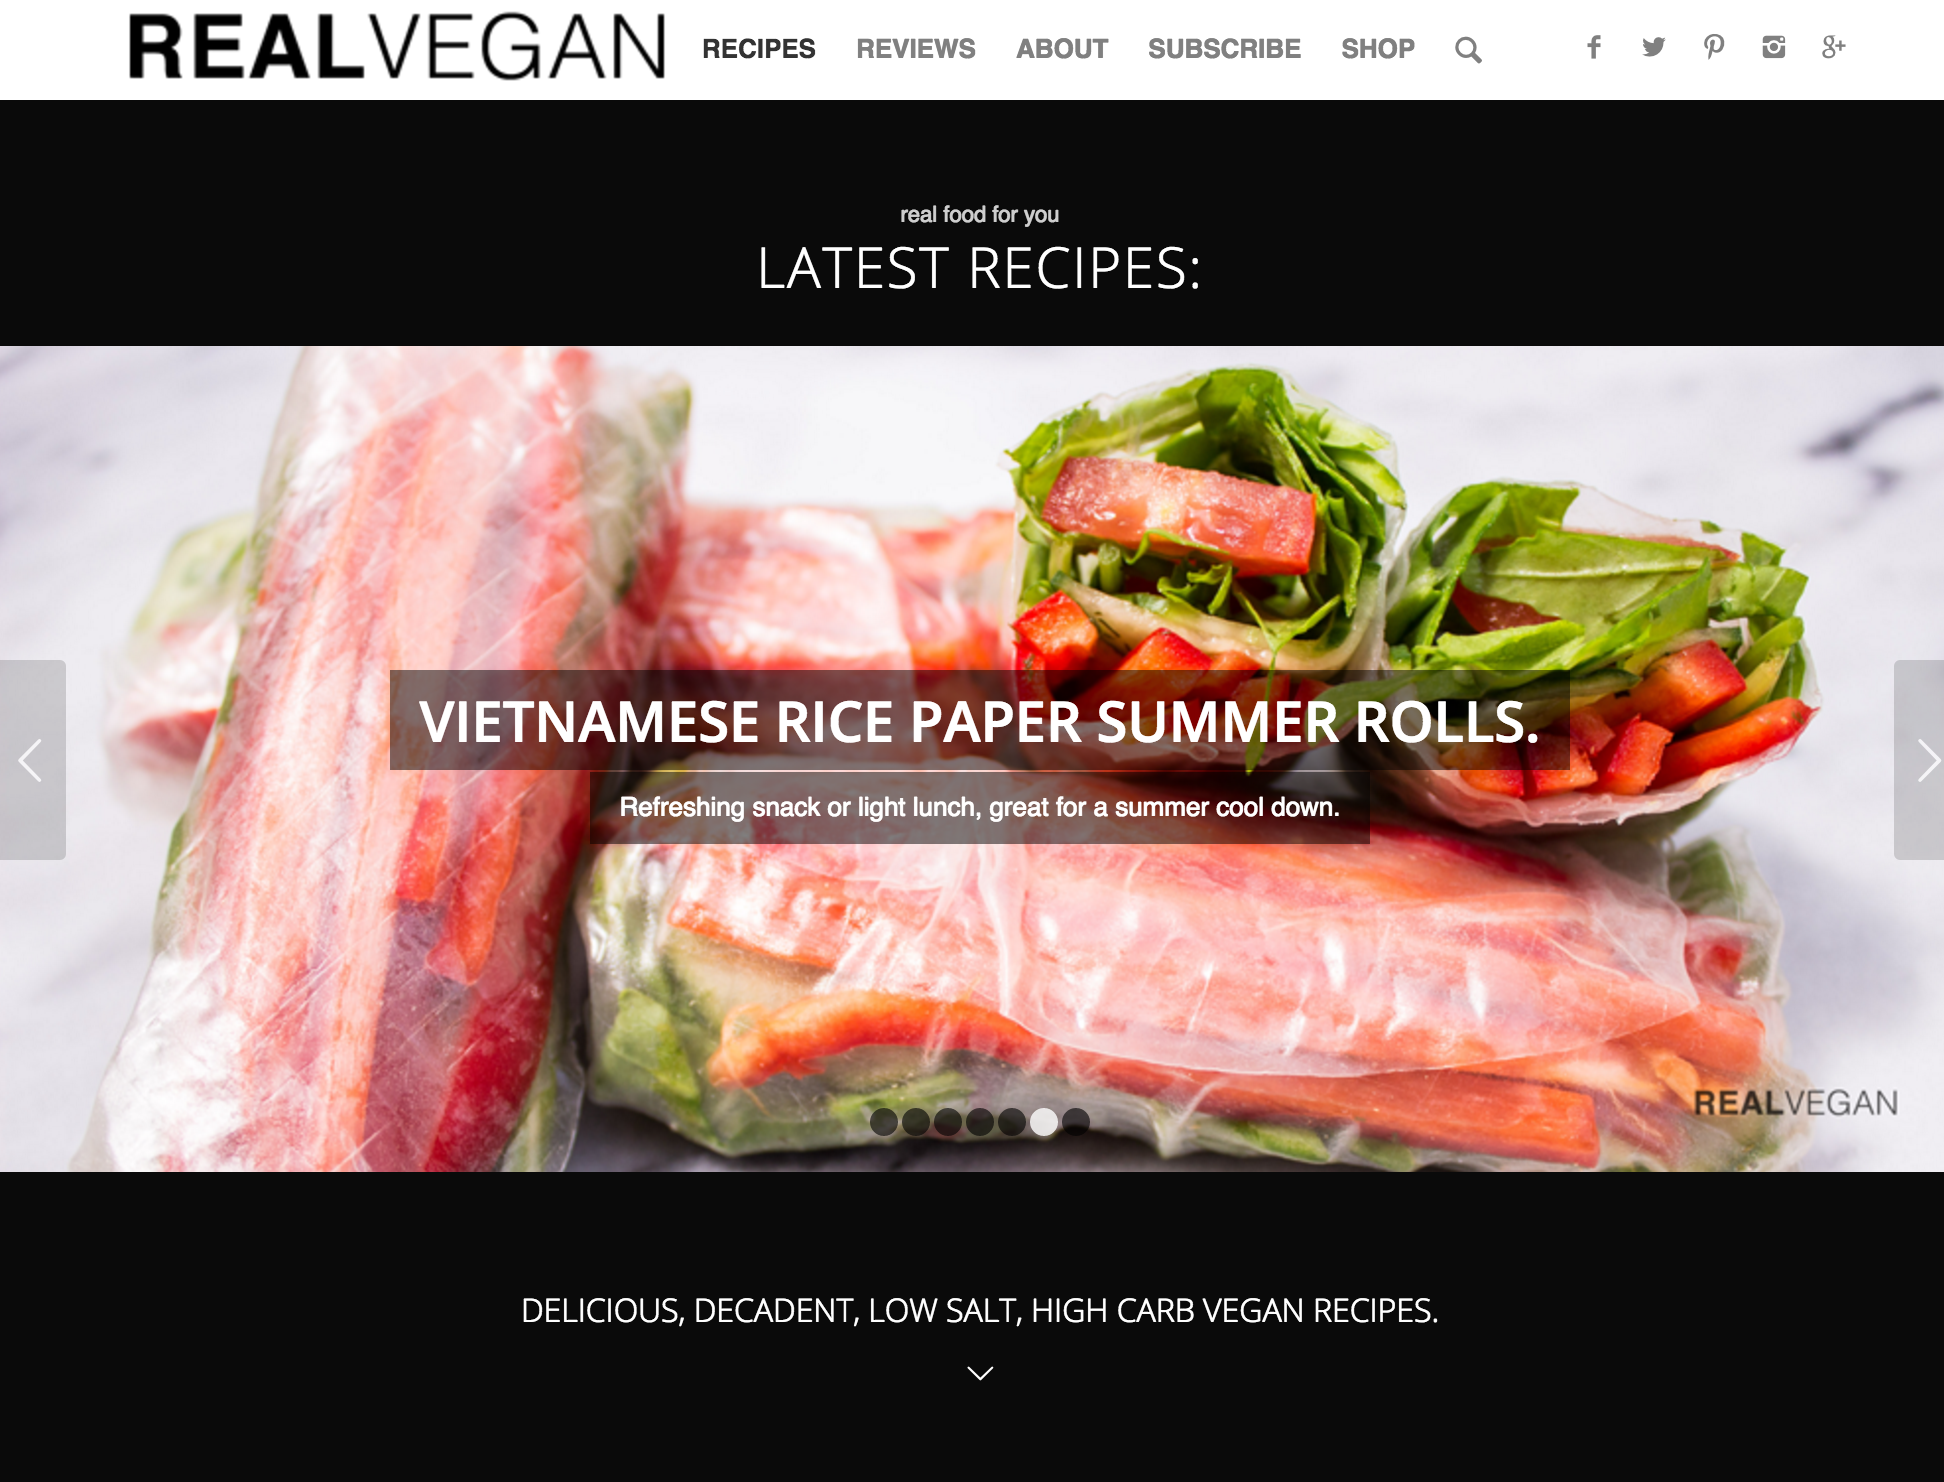 A screenshot of realvegan.co.uk